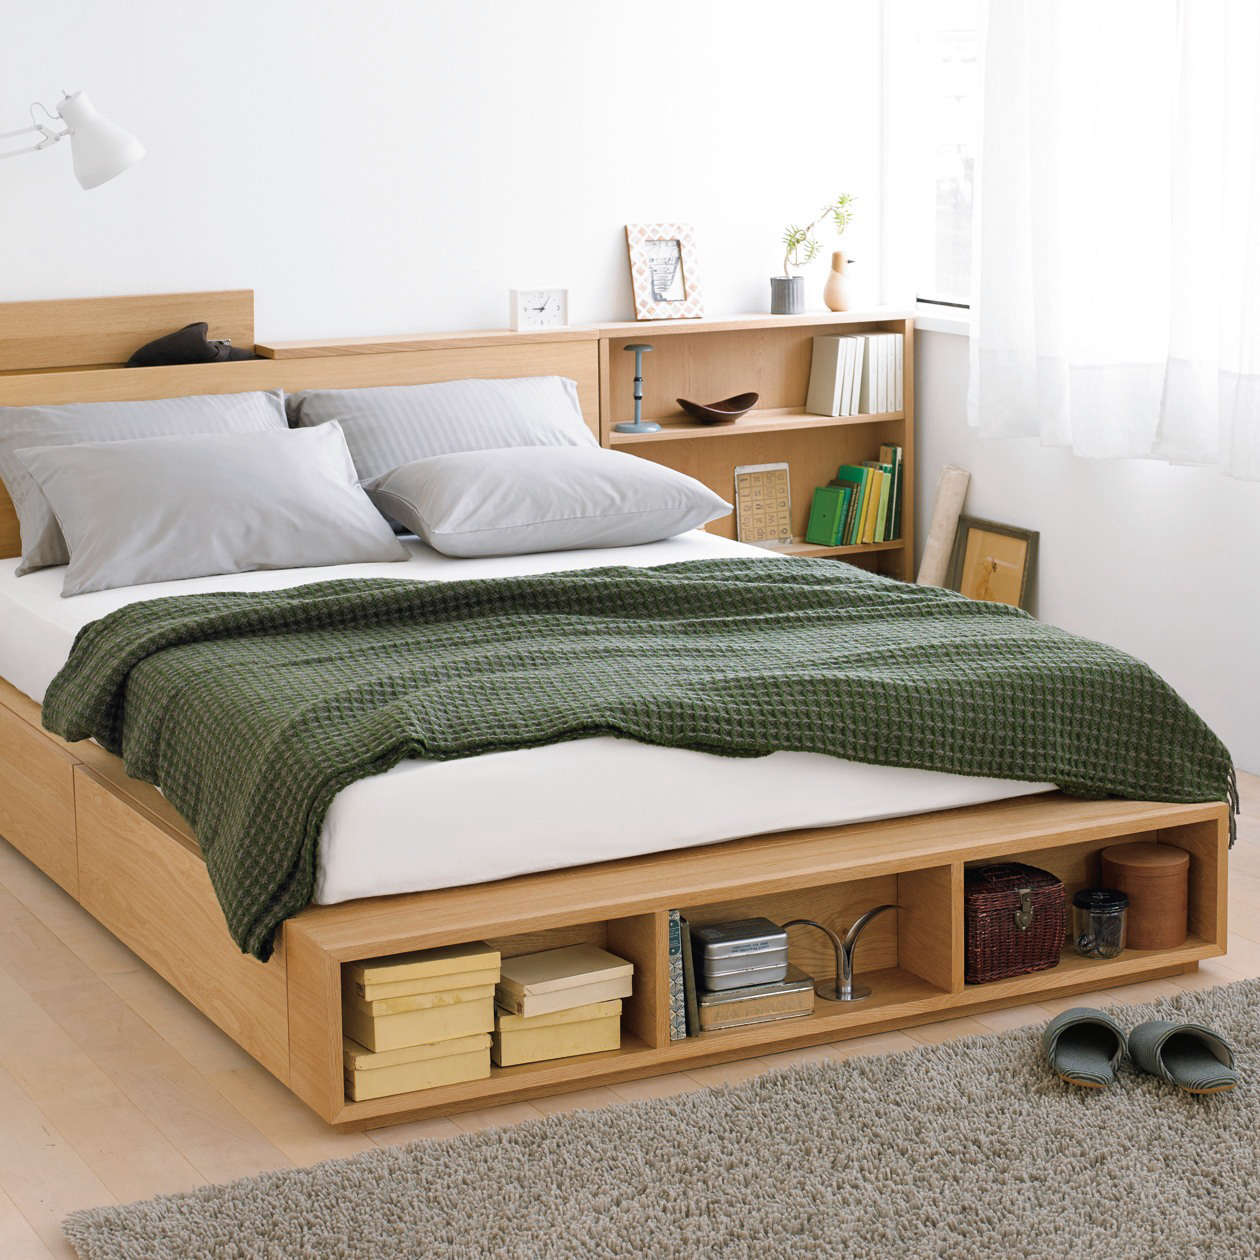 Mujiu0027s Large Double Light Ash Bed Has Two Large Storage Drawers And Can Be  Custom